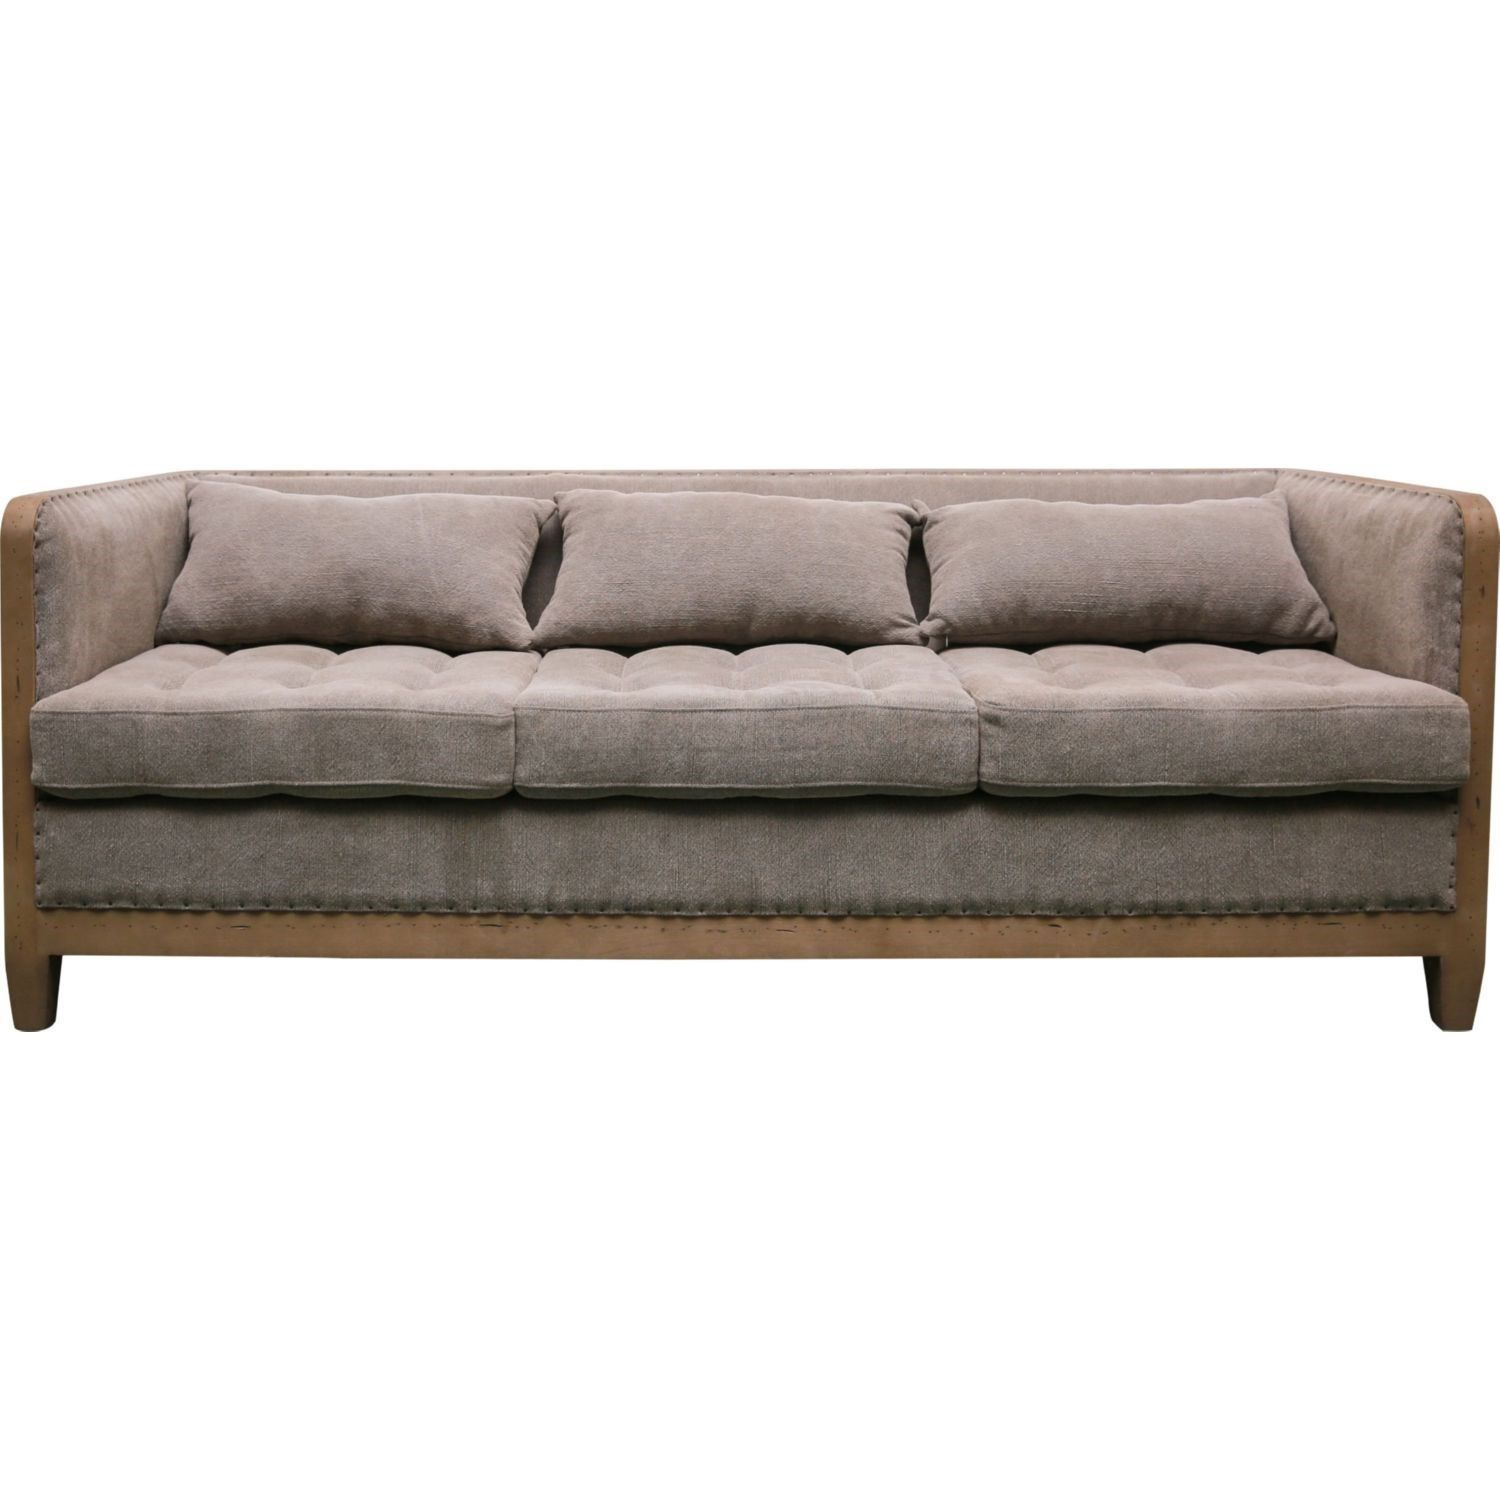 Moe's Home Collection Sx 1015 25 Cosette Sofa In Grey | Pinterest For Cosette Leather Sofa Chairs (Image 23 of 25)